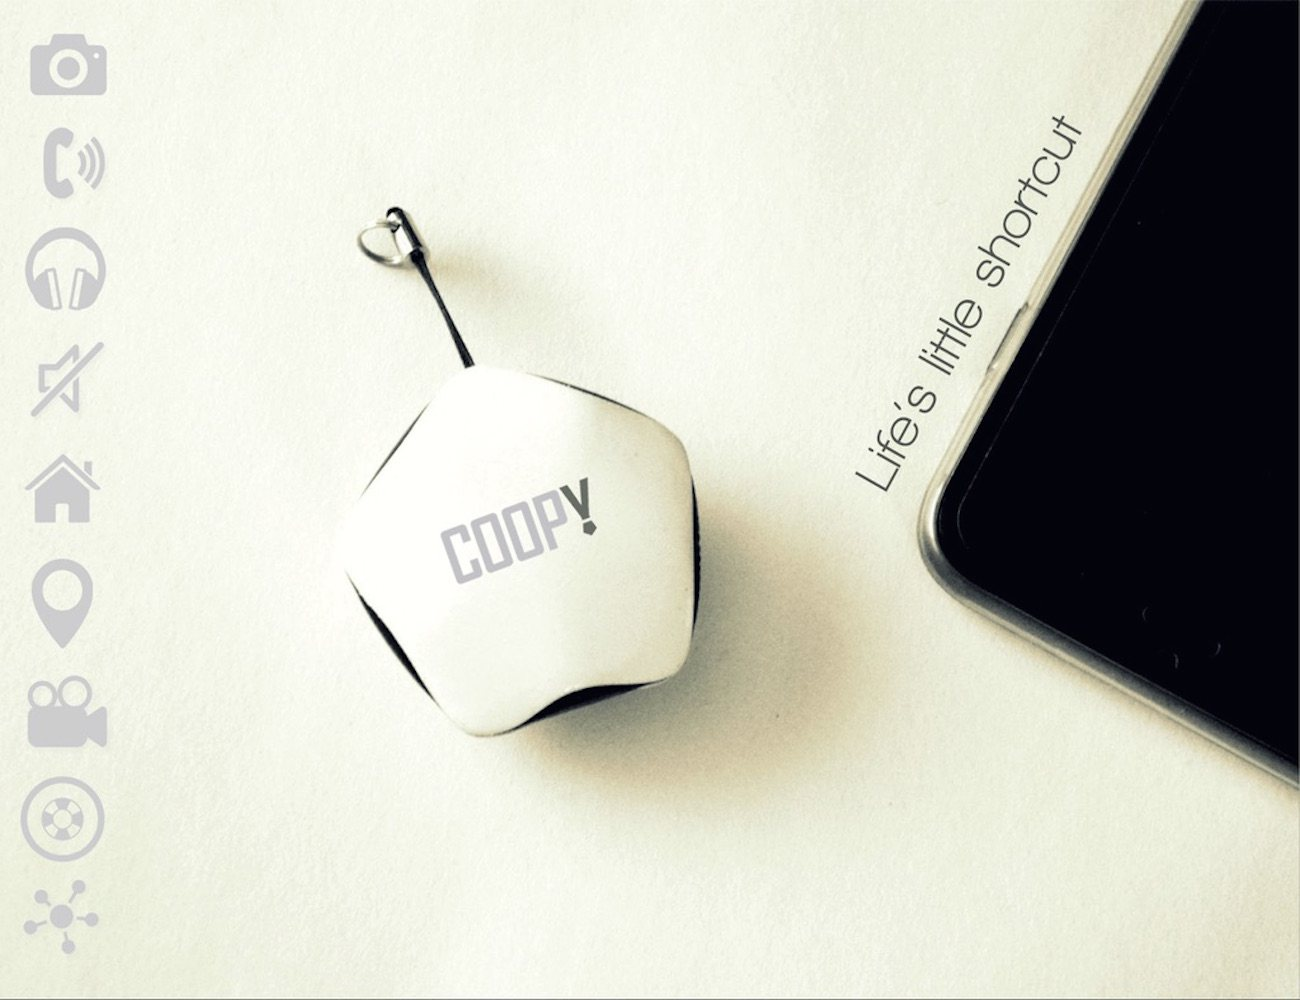 coopy-remote-control-for-your-smartphone-01